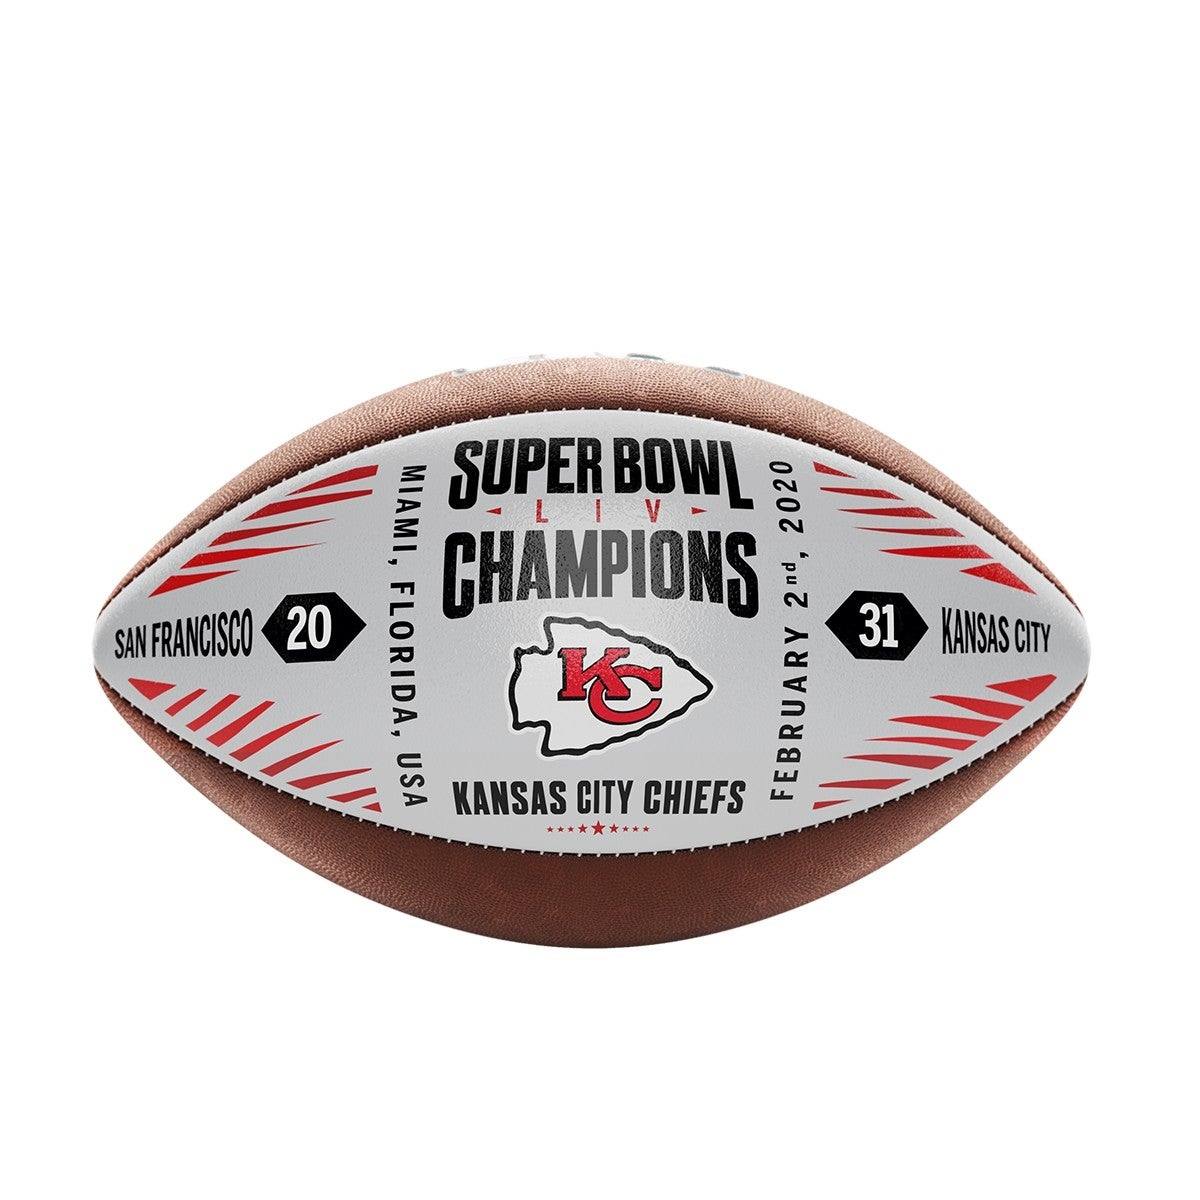 Super Bowl LIV Commemorative Leather Championship Football